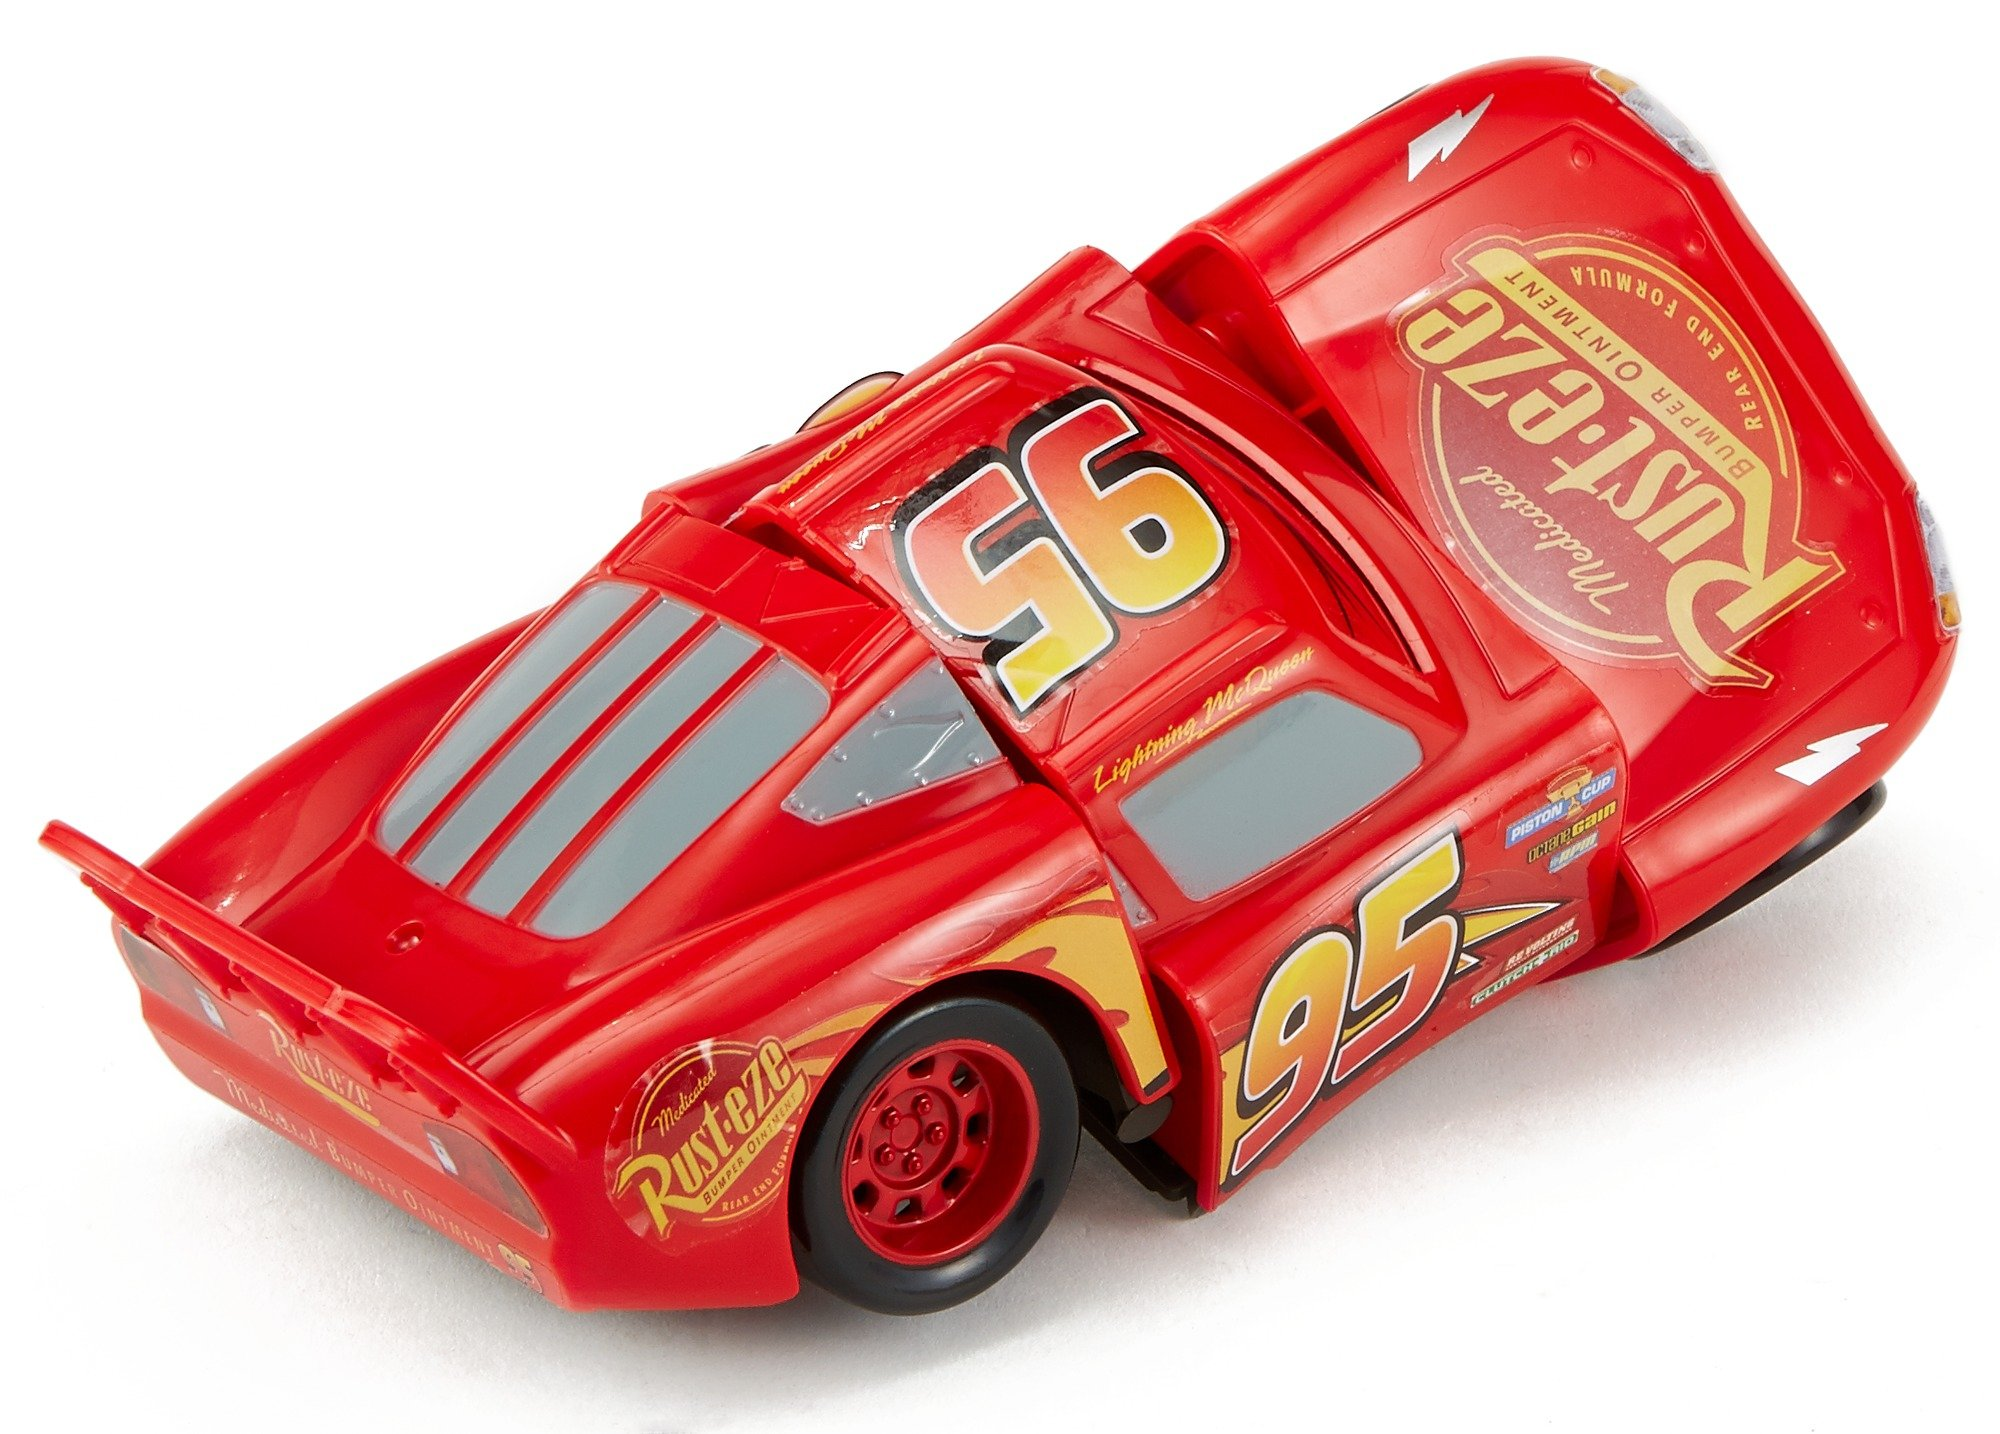 Disney DYW39 Pixar Cars 3 Race and Reck Lightning McQueen Vehicle Disney New Disney Pixar Cars 3 Twisted Crashers vehicle.  His body twists and his eyes change after the crash!  Restore him to his former; pre smash glory by simply twisting the car back into place! 5